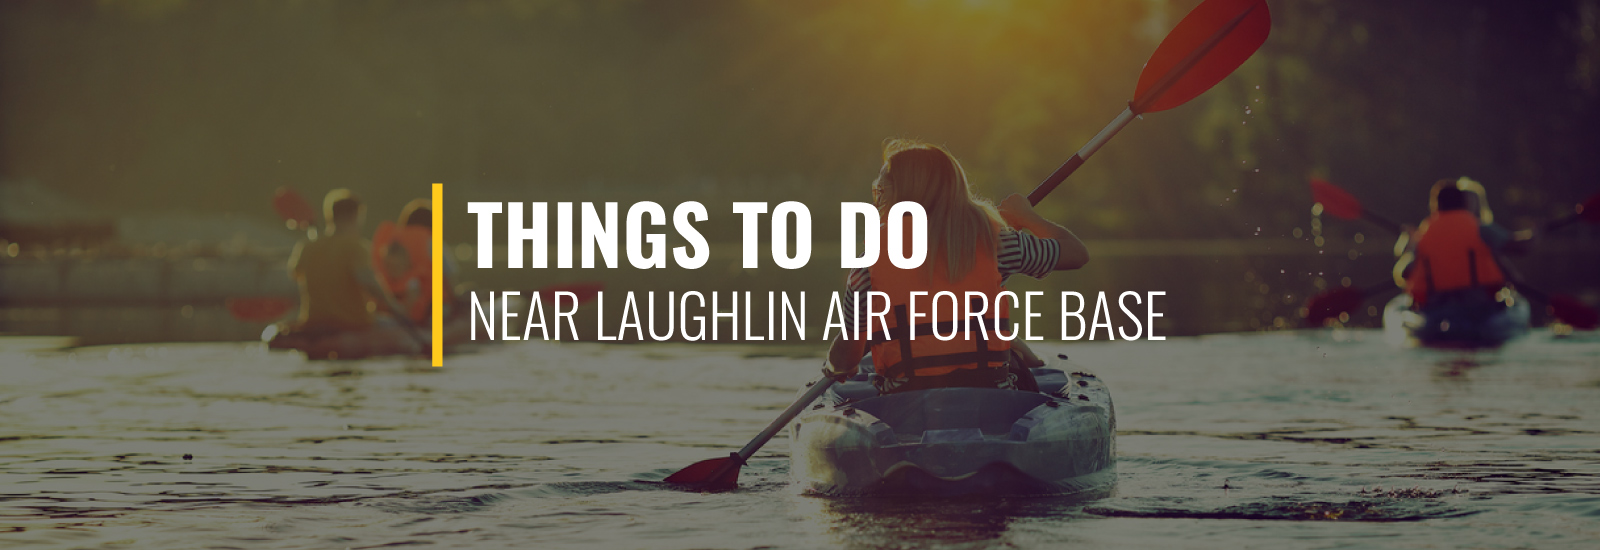 Things to Do Around Laughlin AFB